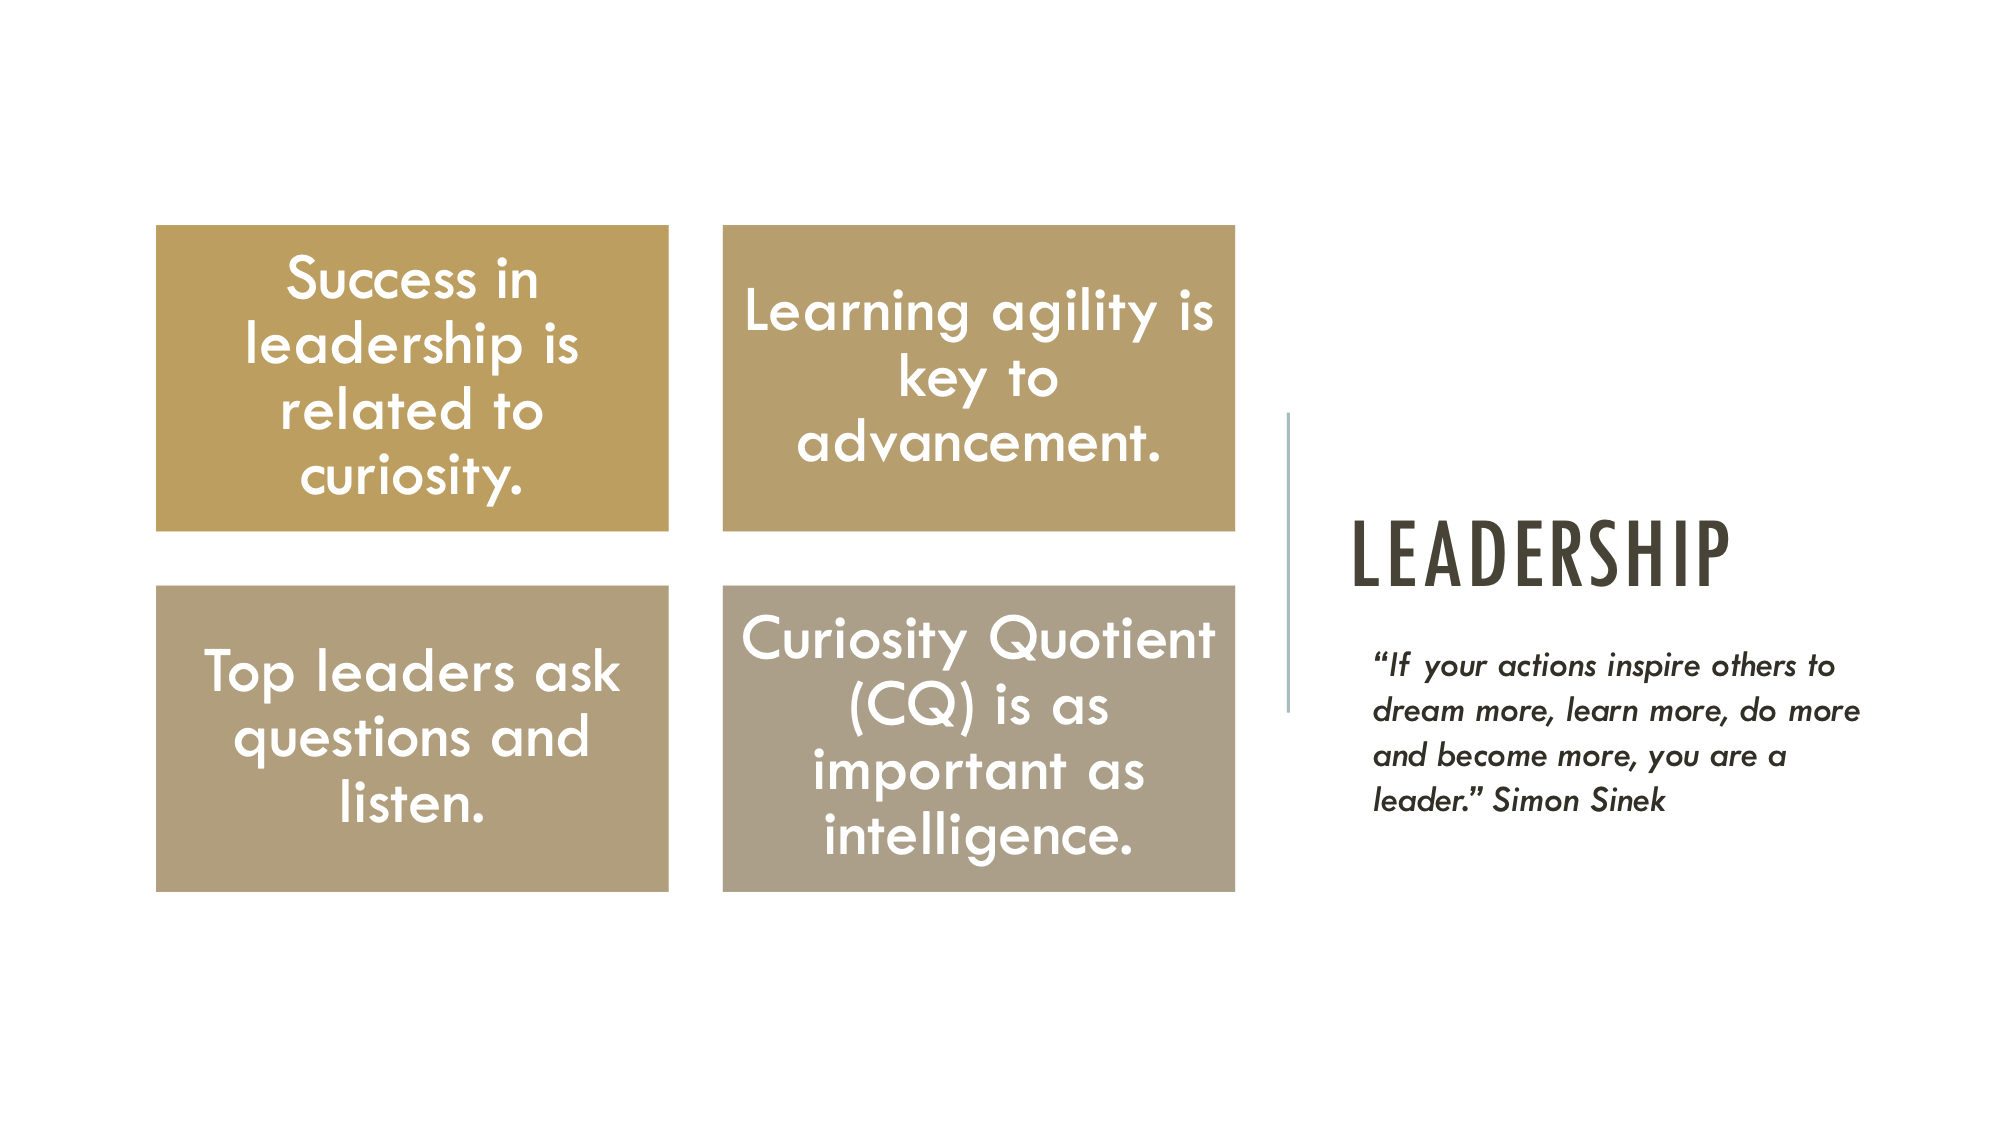 An infographic showing some key attributes of leadership